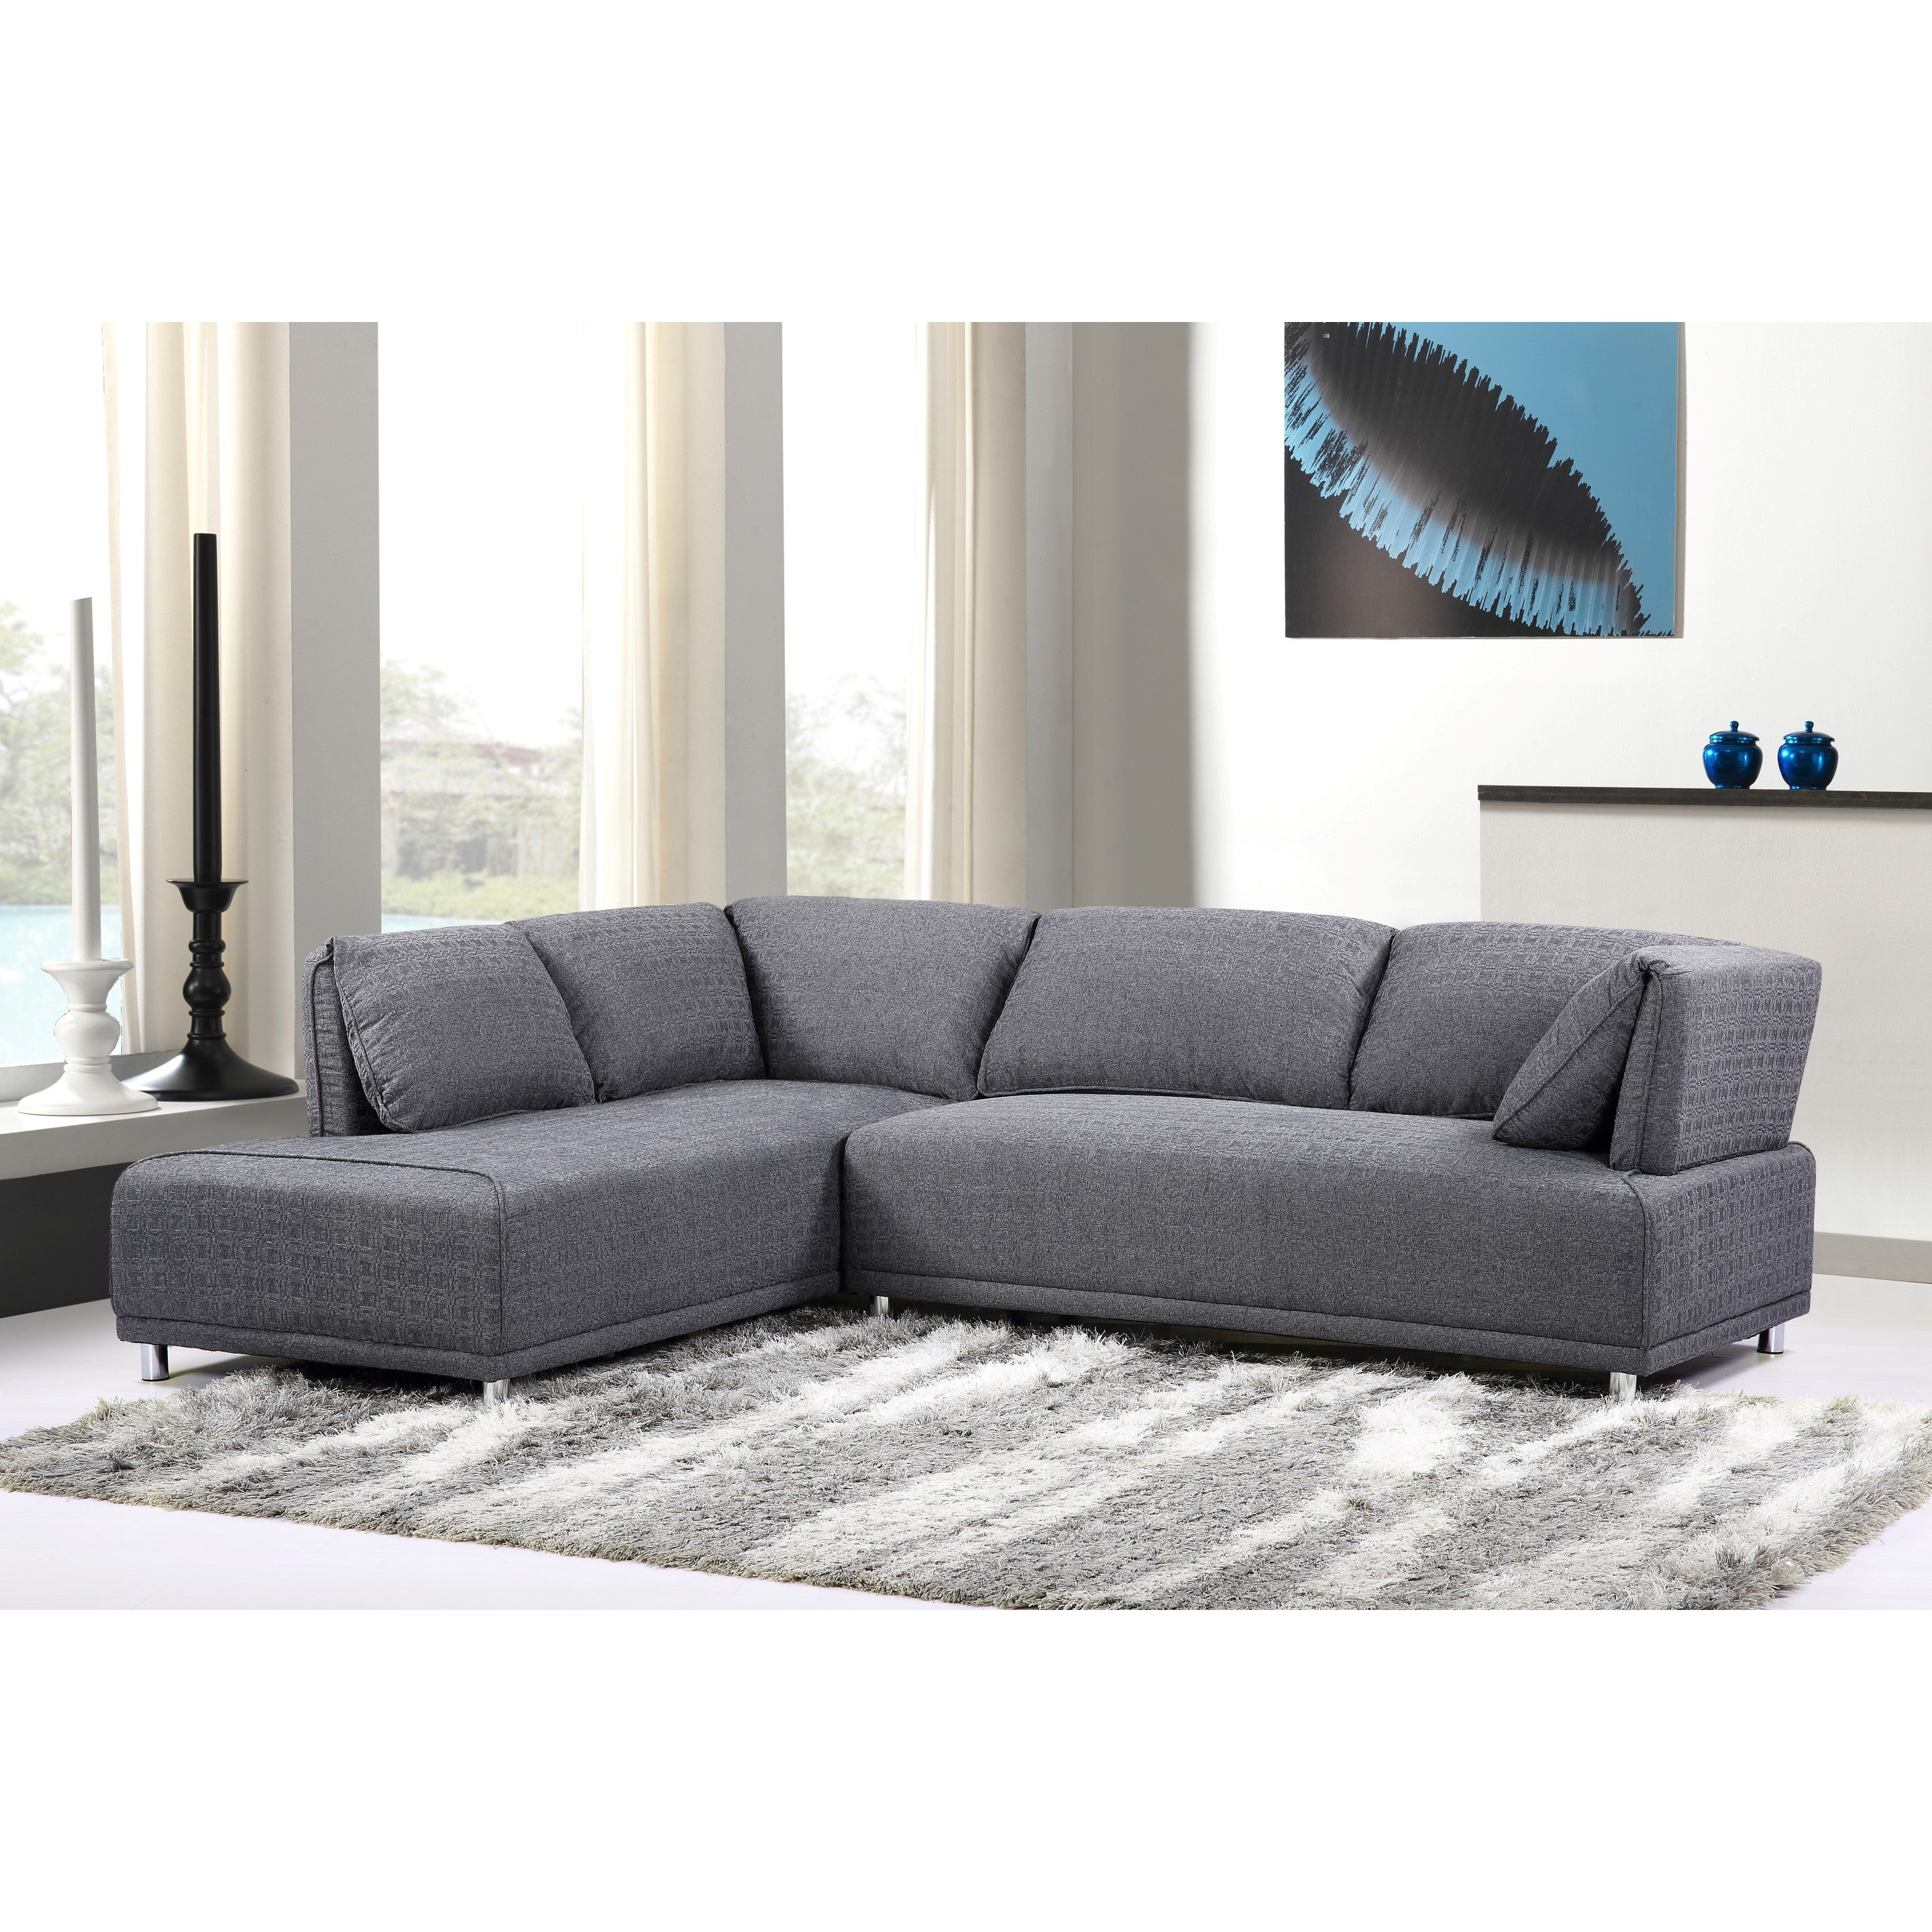 sectional w l by ashley chaise sofa right collections signature alliston design left lss item chocolate fish tufting durablend